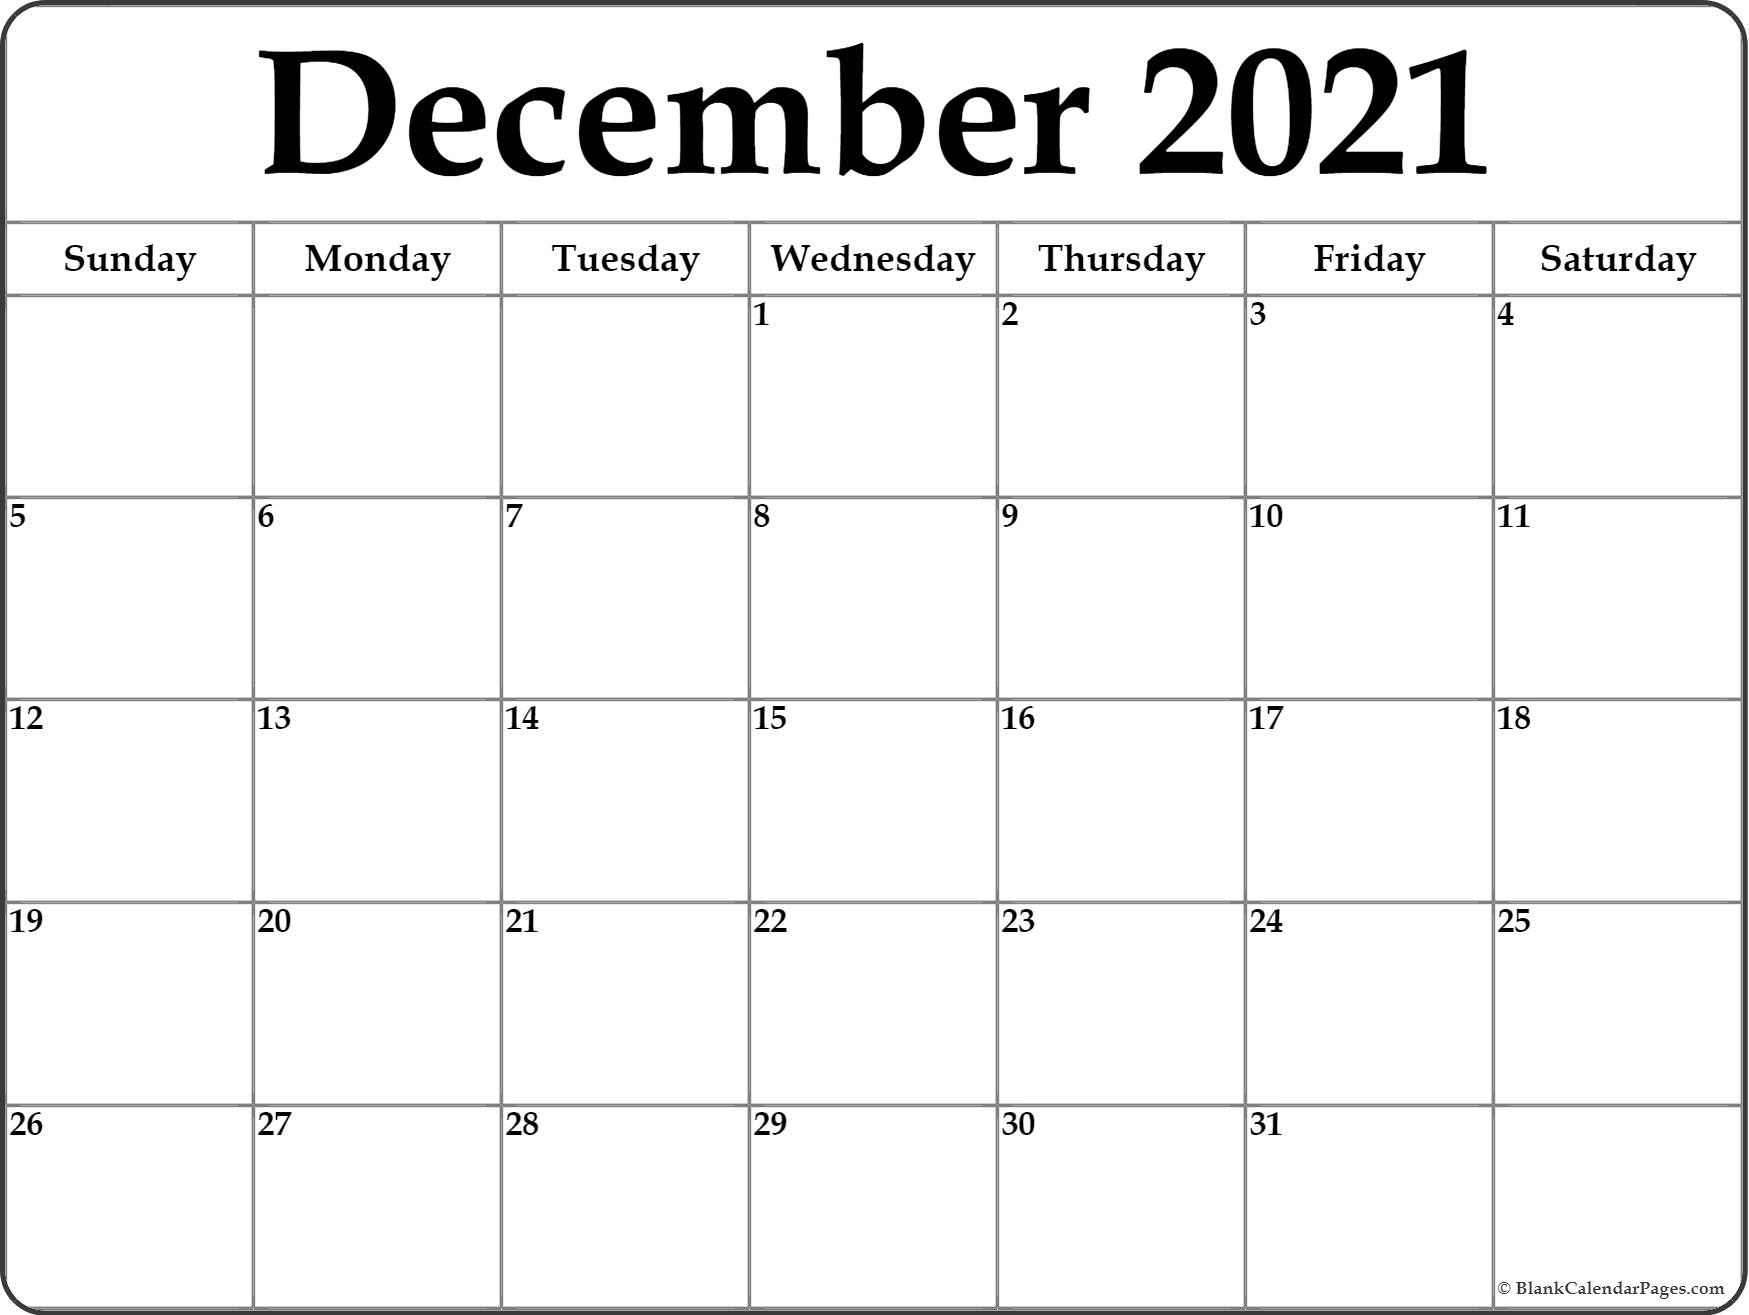 Collect 2021 December Caemdar Tp Rint For No Download With Pictures